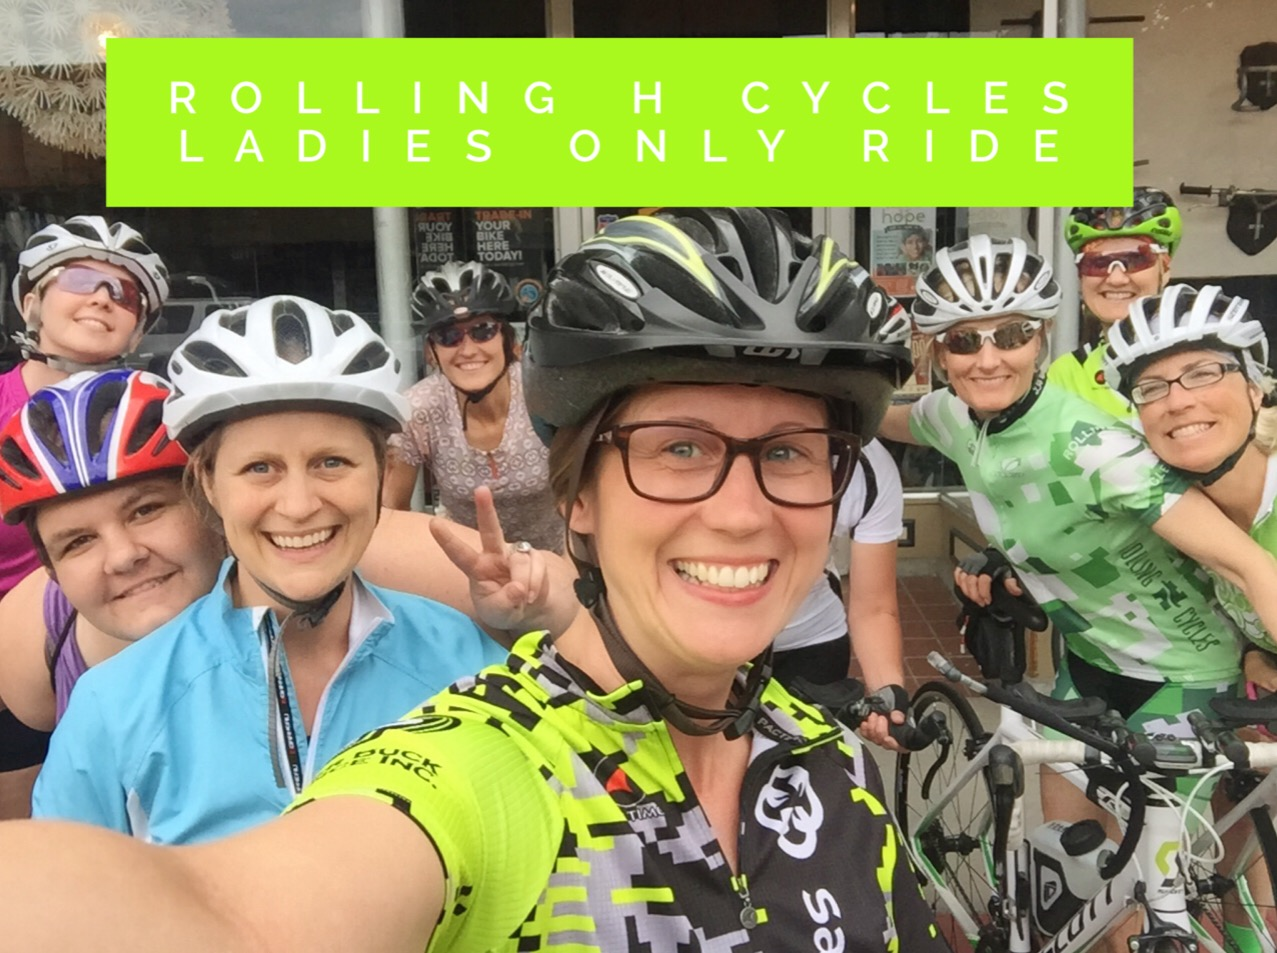 Rolling H Cycles Ladies Ride